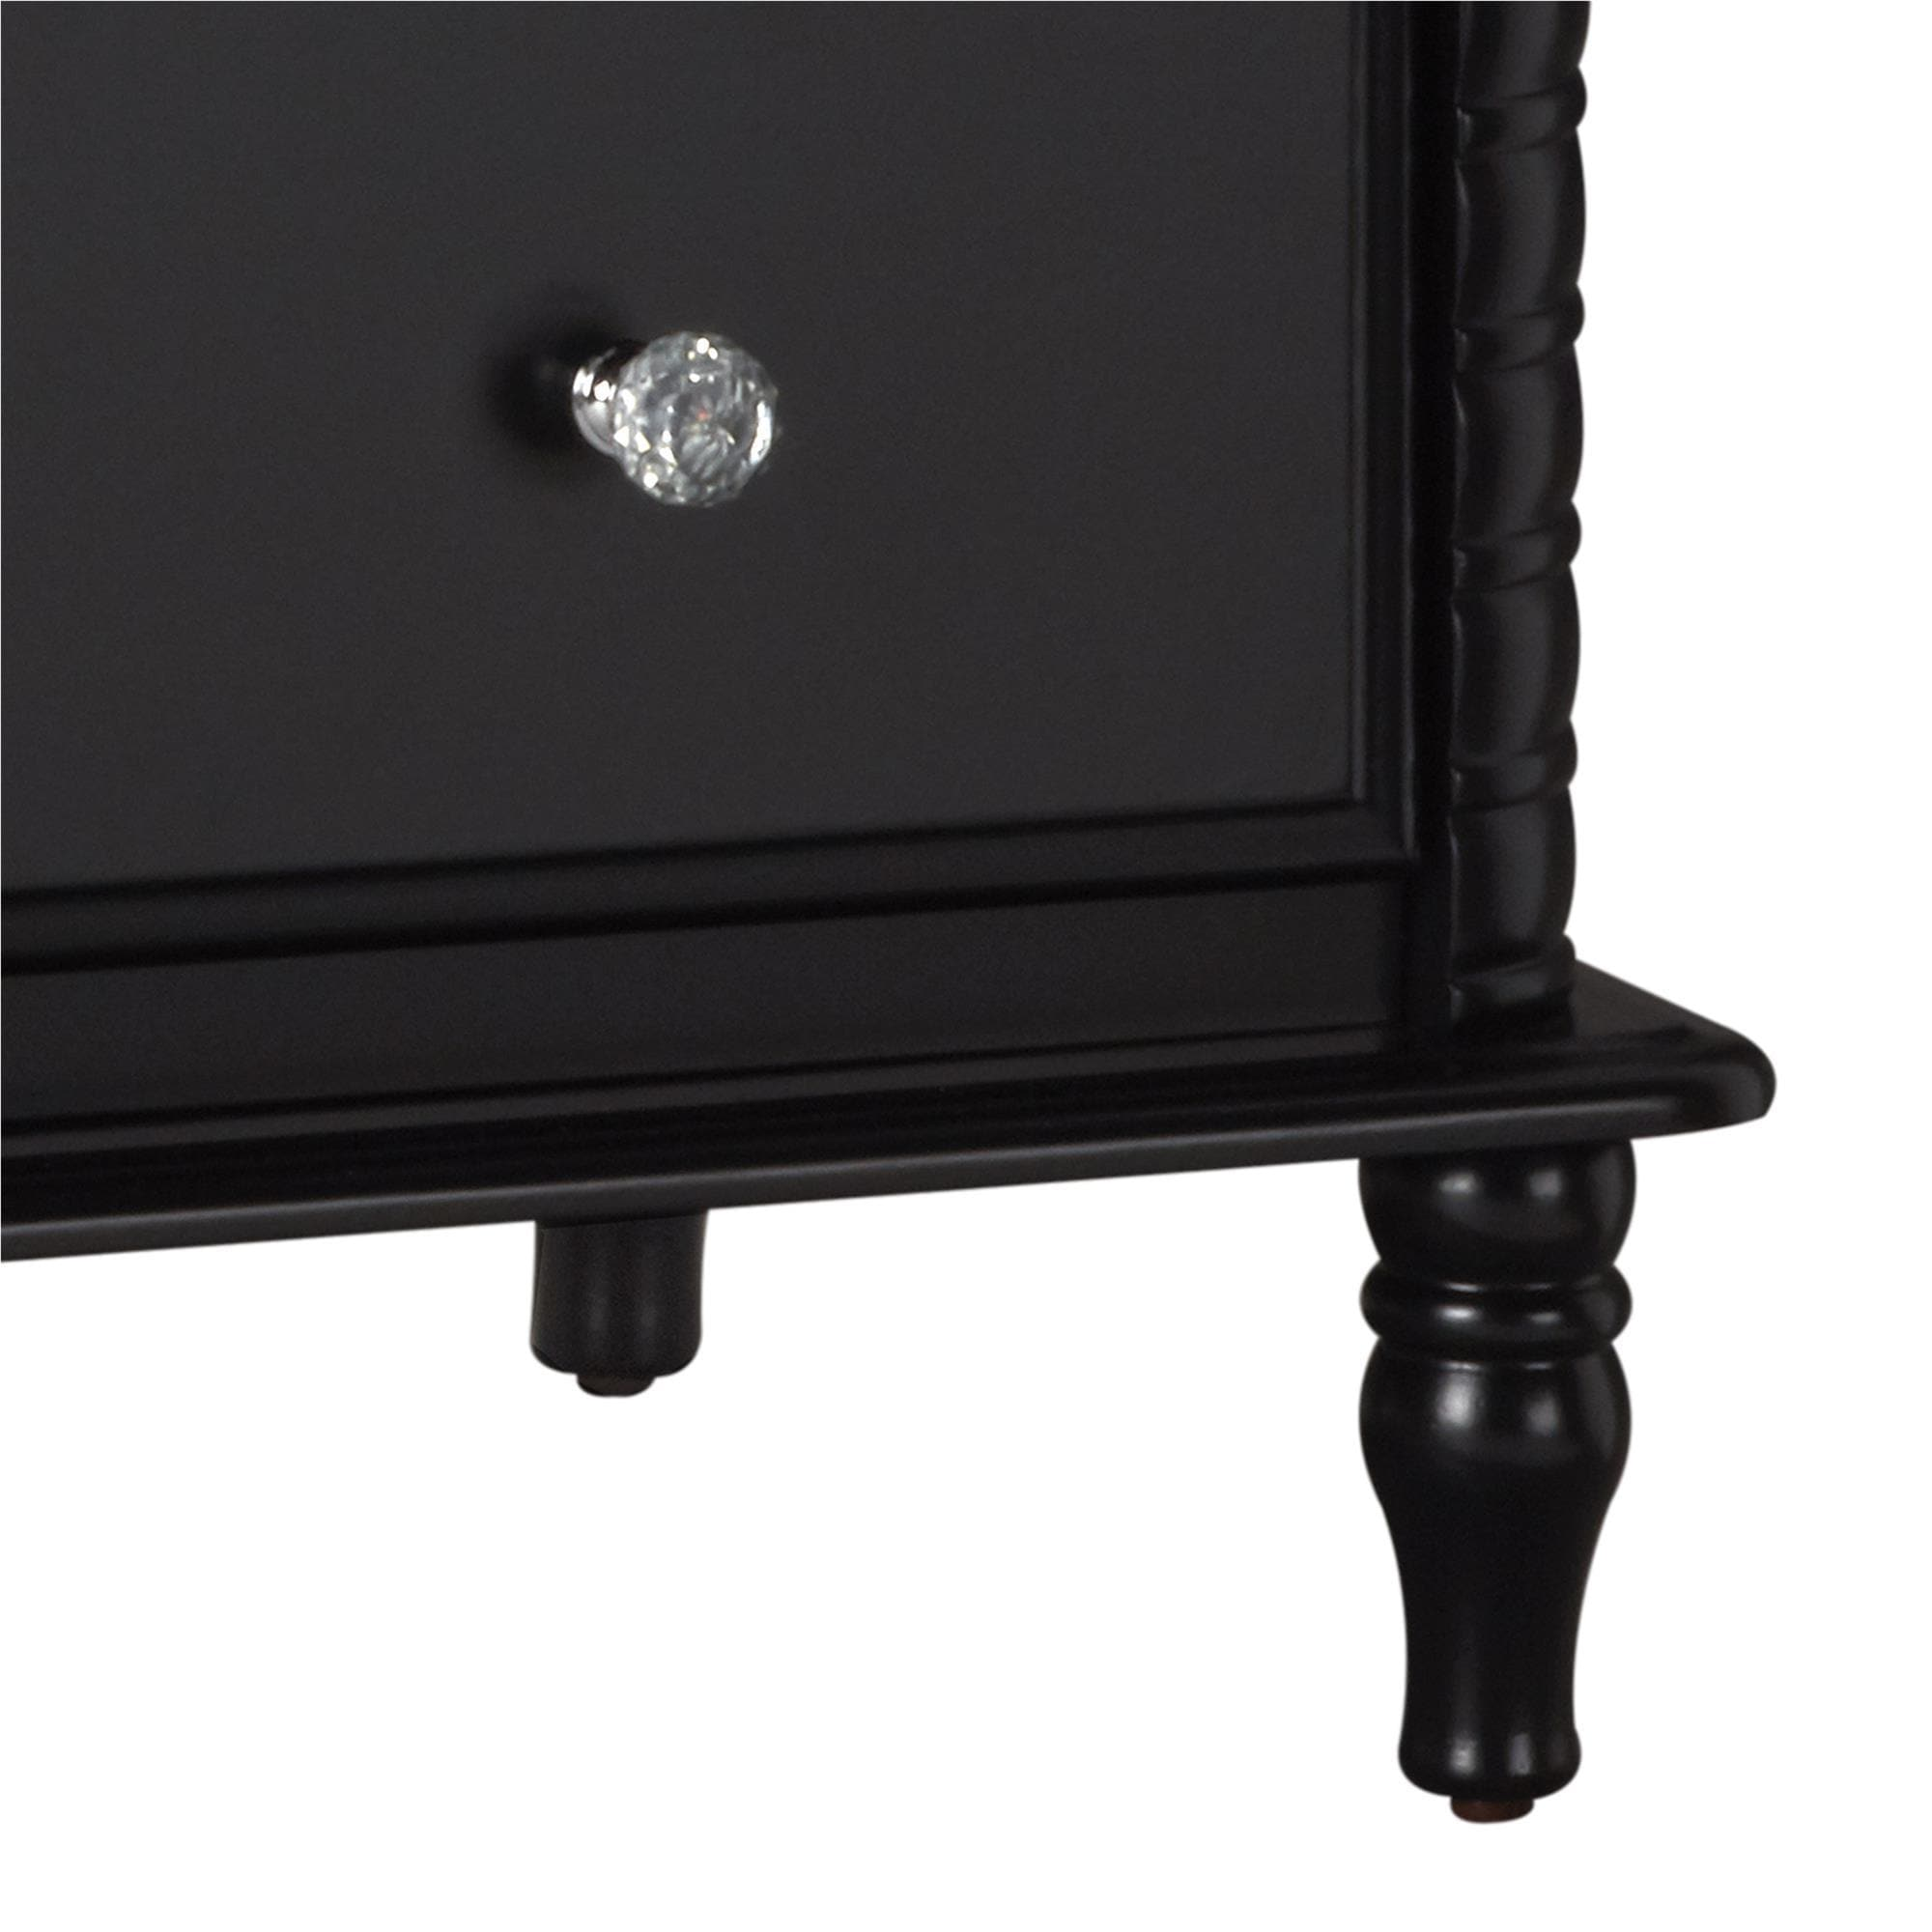 chest uc furniture from image black of drawer dresser faux bedroom leather draws prado drawers